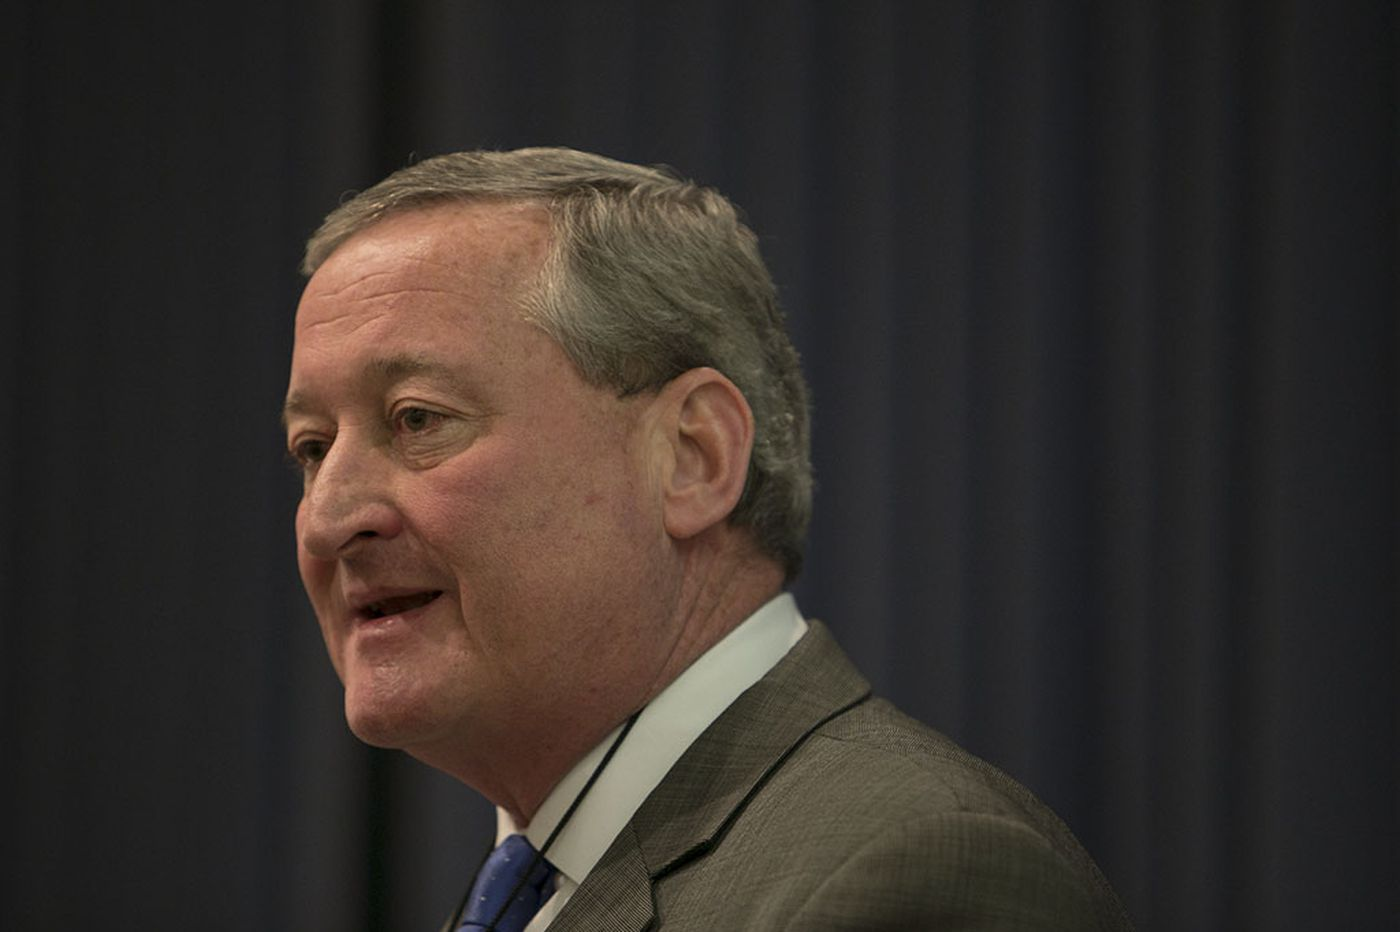 Kenney campaign issues proposals on ethics and pay-to-play